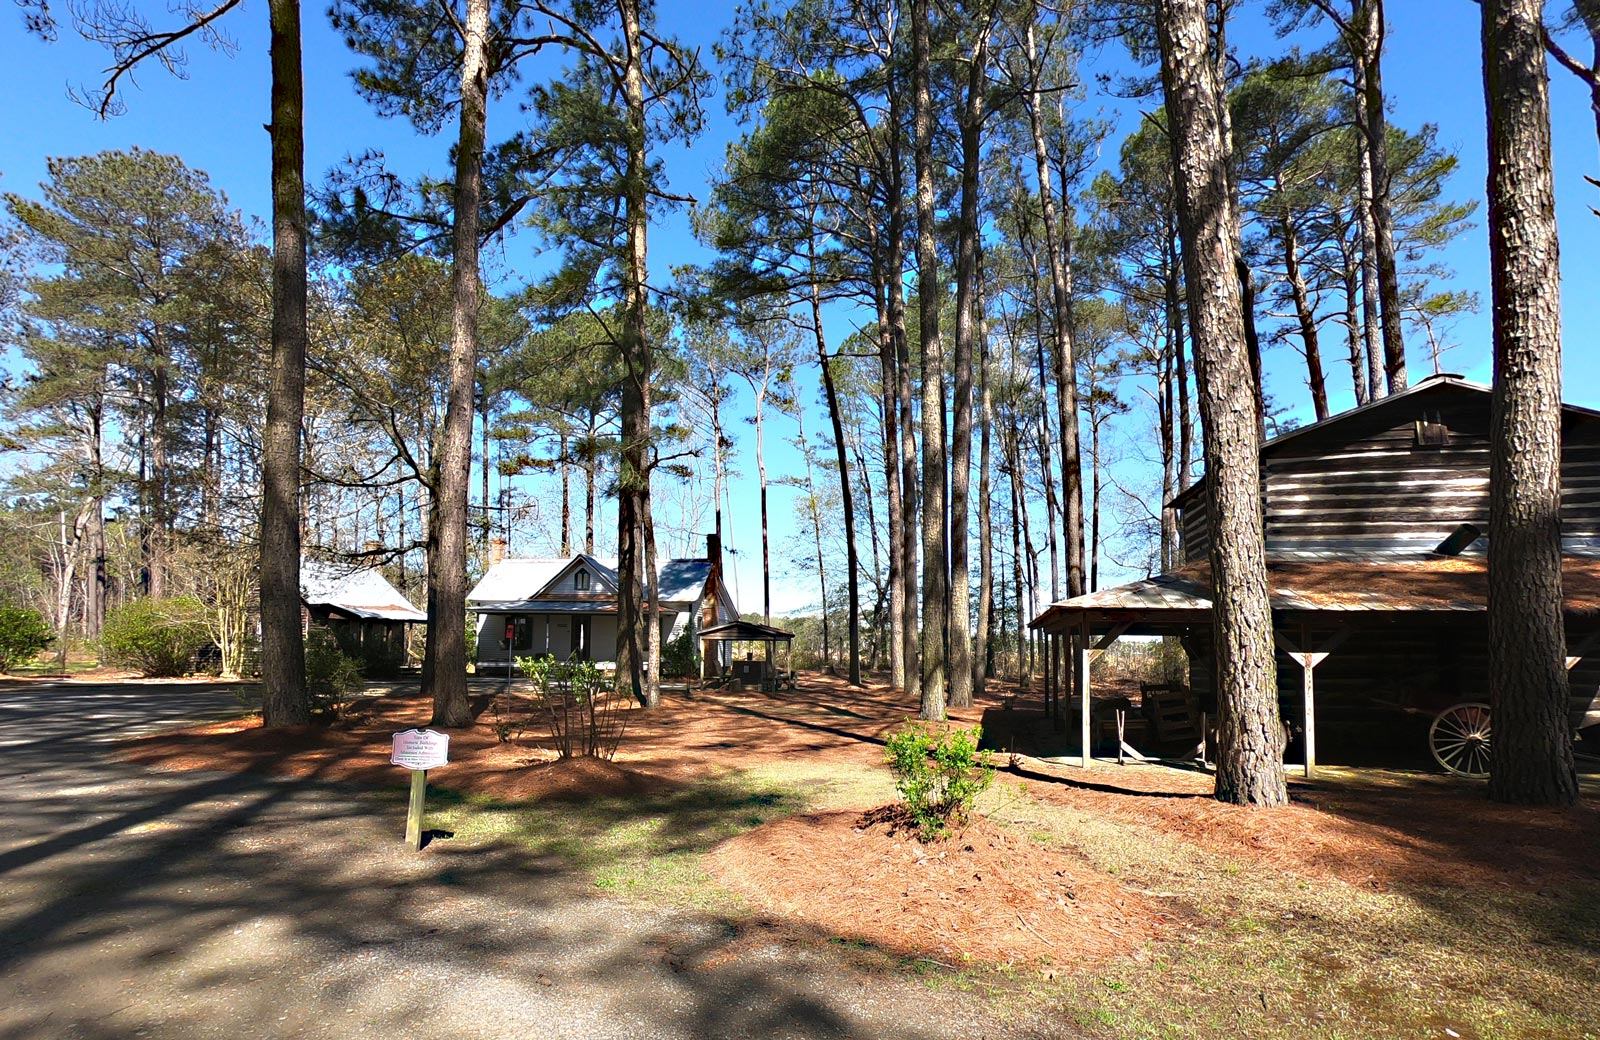 Outdoor self-guided tour of Iredell Brown Farmstead at the Tobacco Farm Life Museum, Kenly, North Carolina